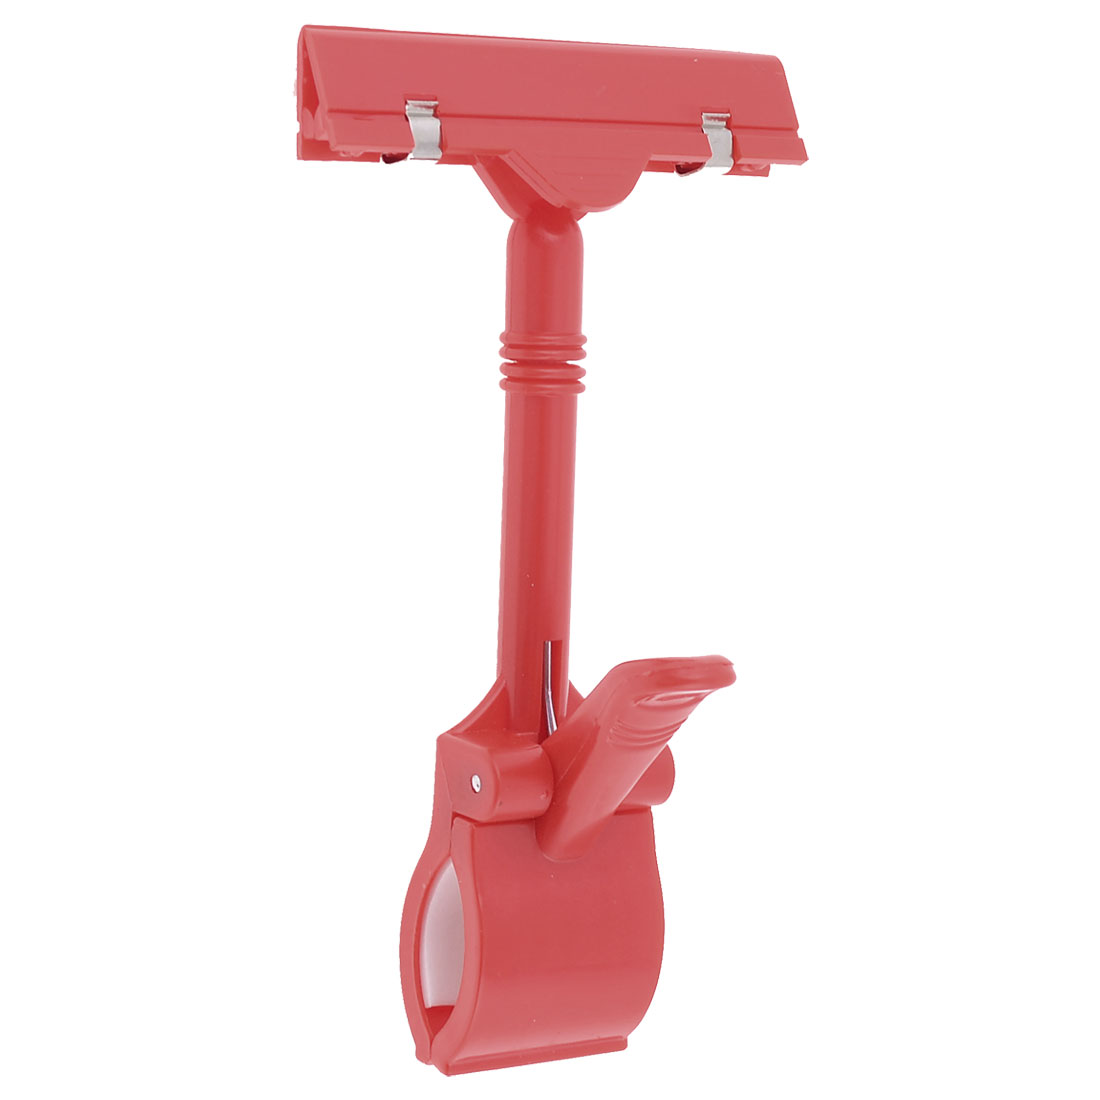 Exhibitions Jointed Design Dual Clamps Red Plastic Pop Thumb Display Clip